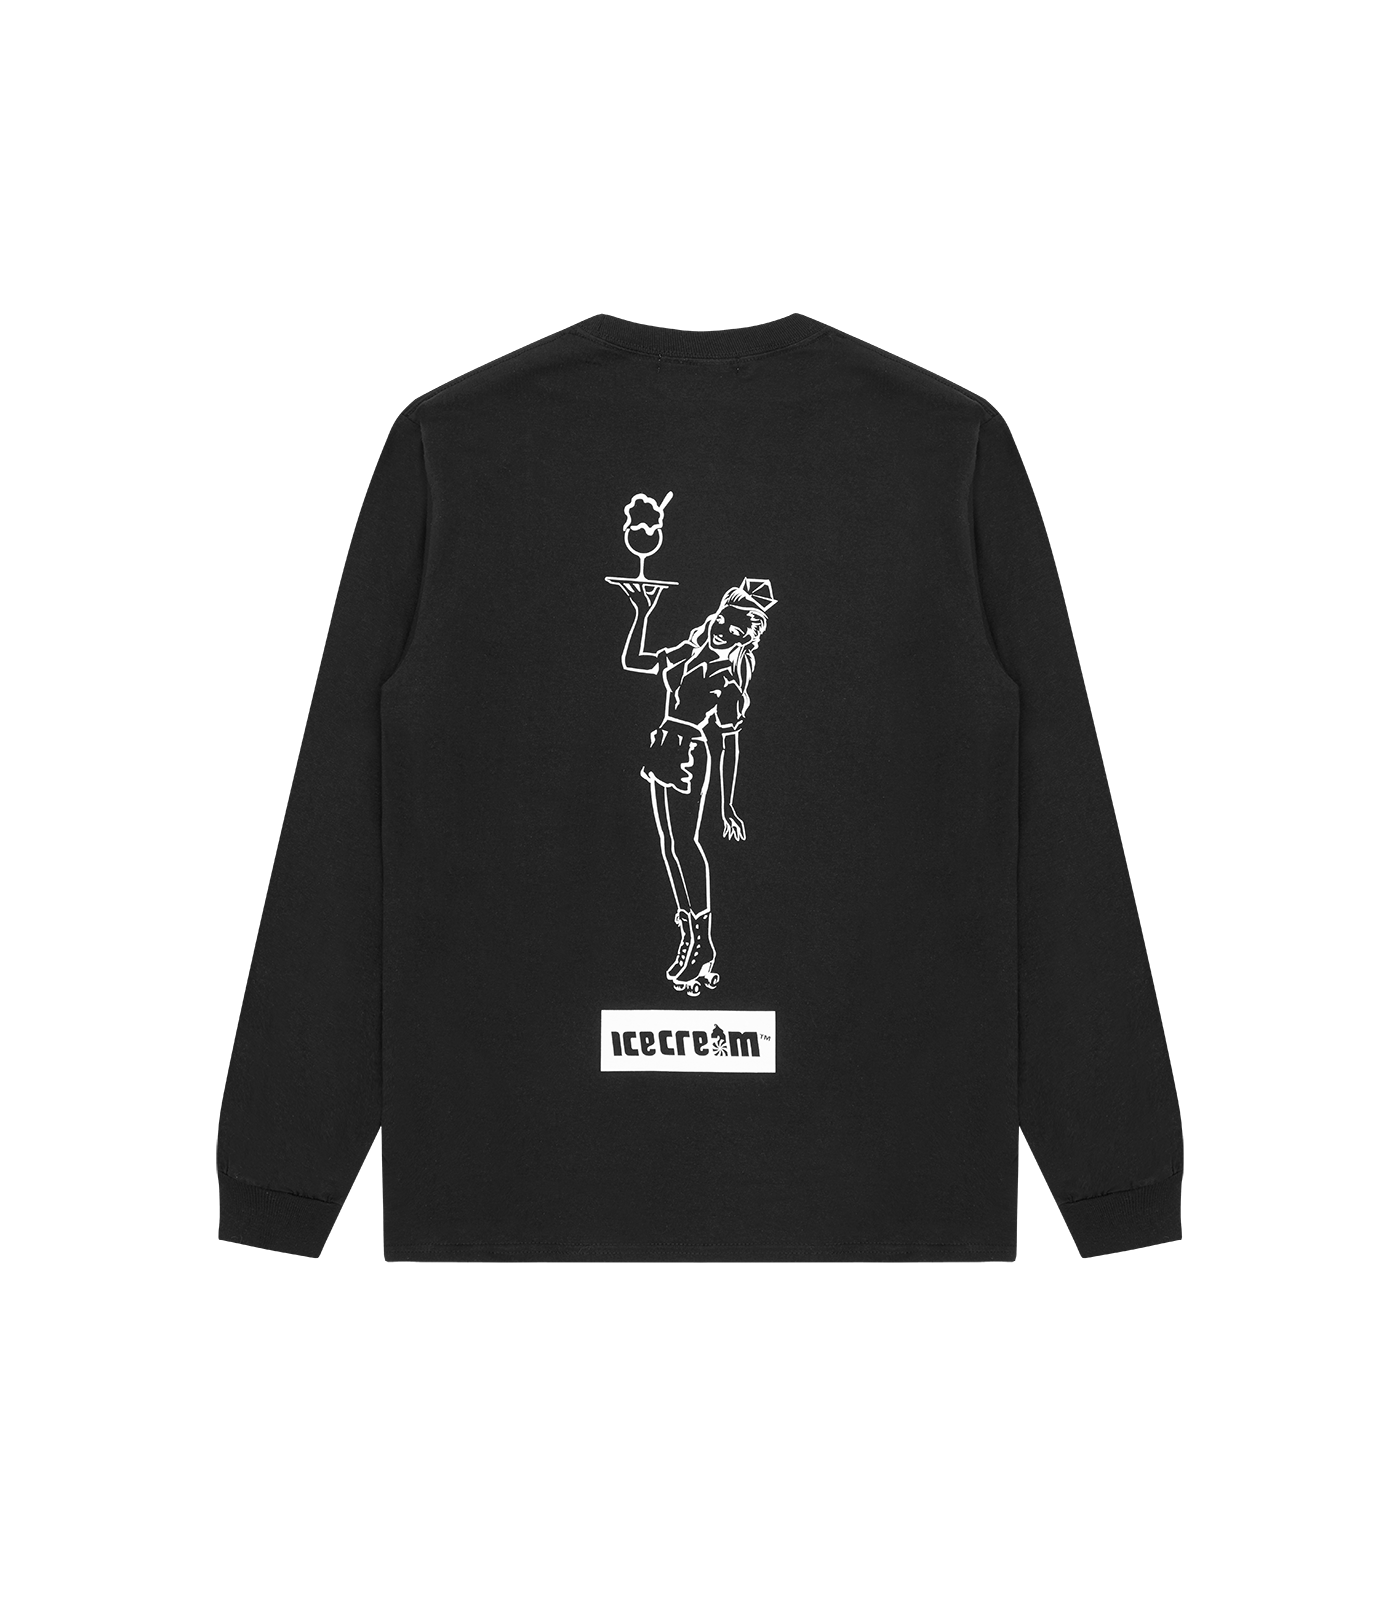 CARHOP L/S T-SHIRT - BLACK